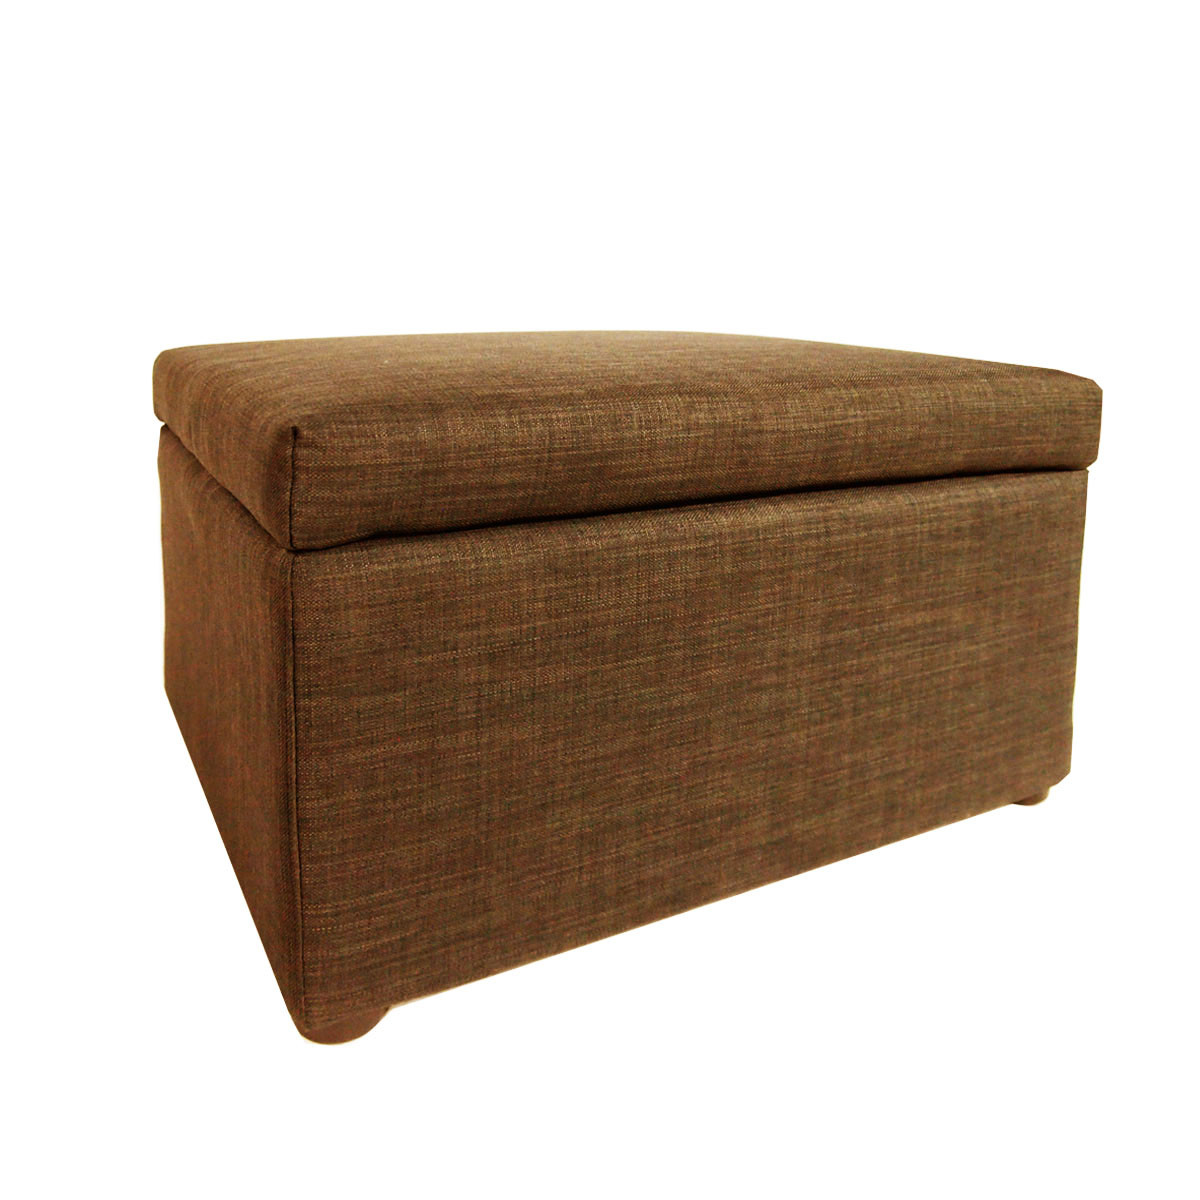 Ottoman coffee table brown coffee tables living room furniture furniture home d cor for Ottoman coffee tables living room